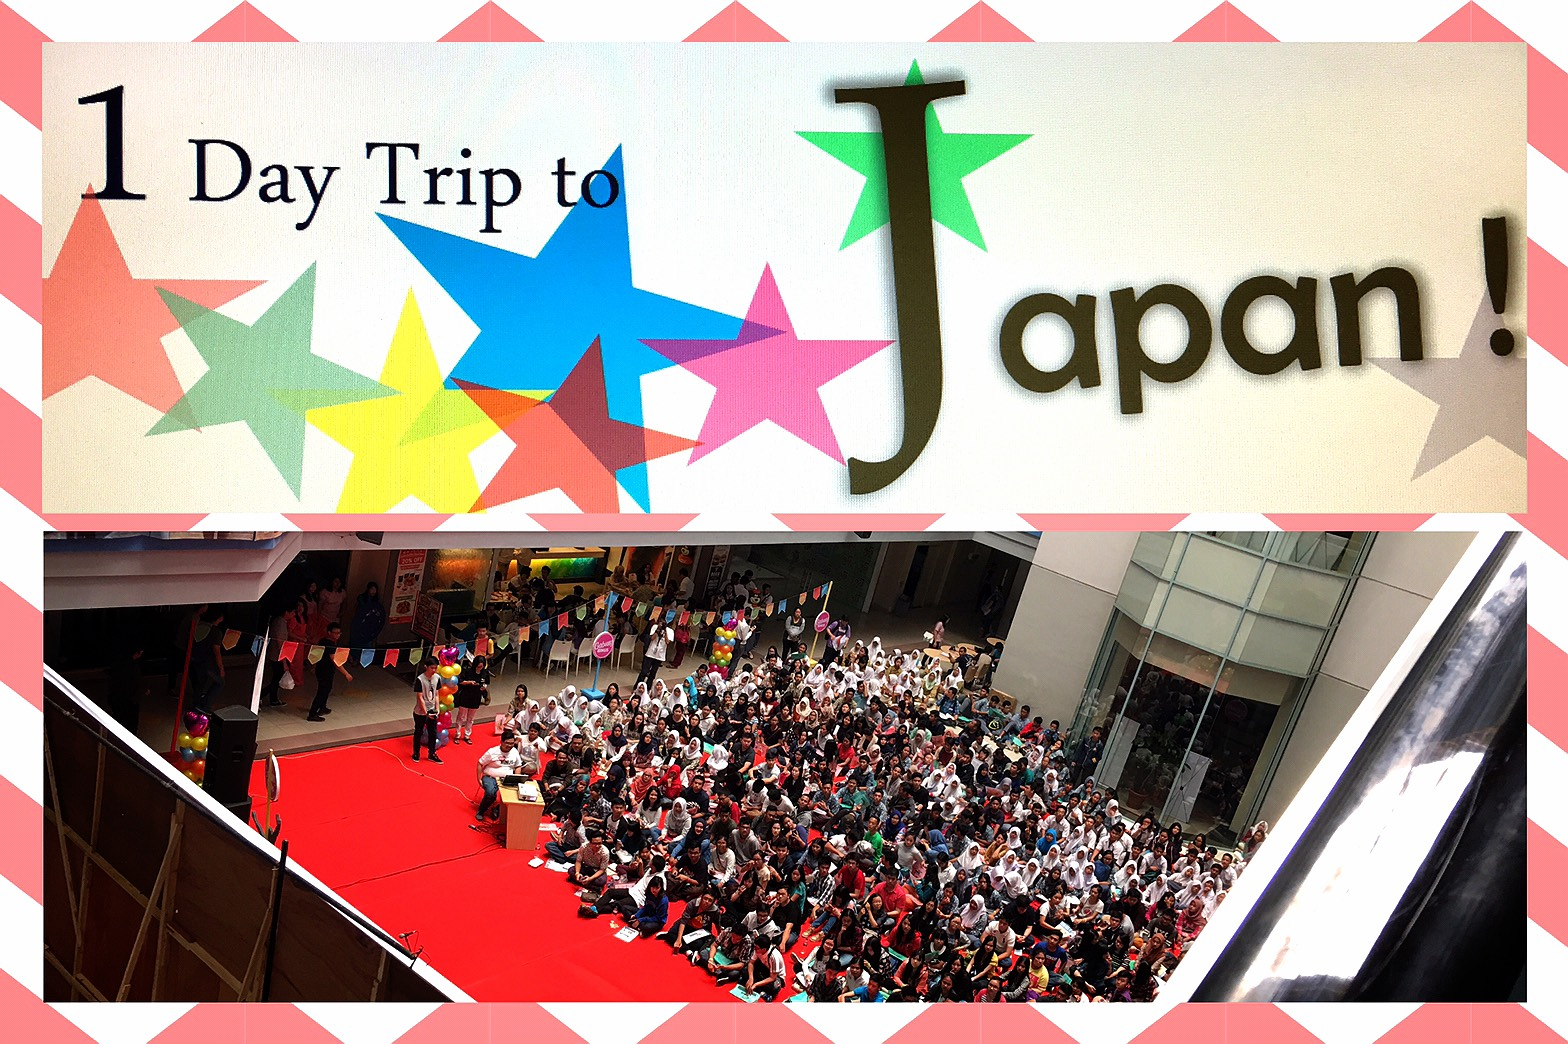 Globalicious 2016 - 1 Day Trip to Japan